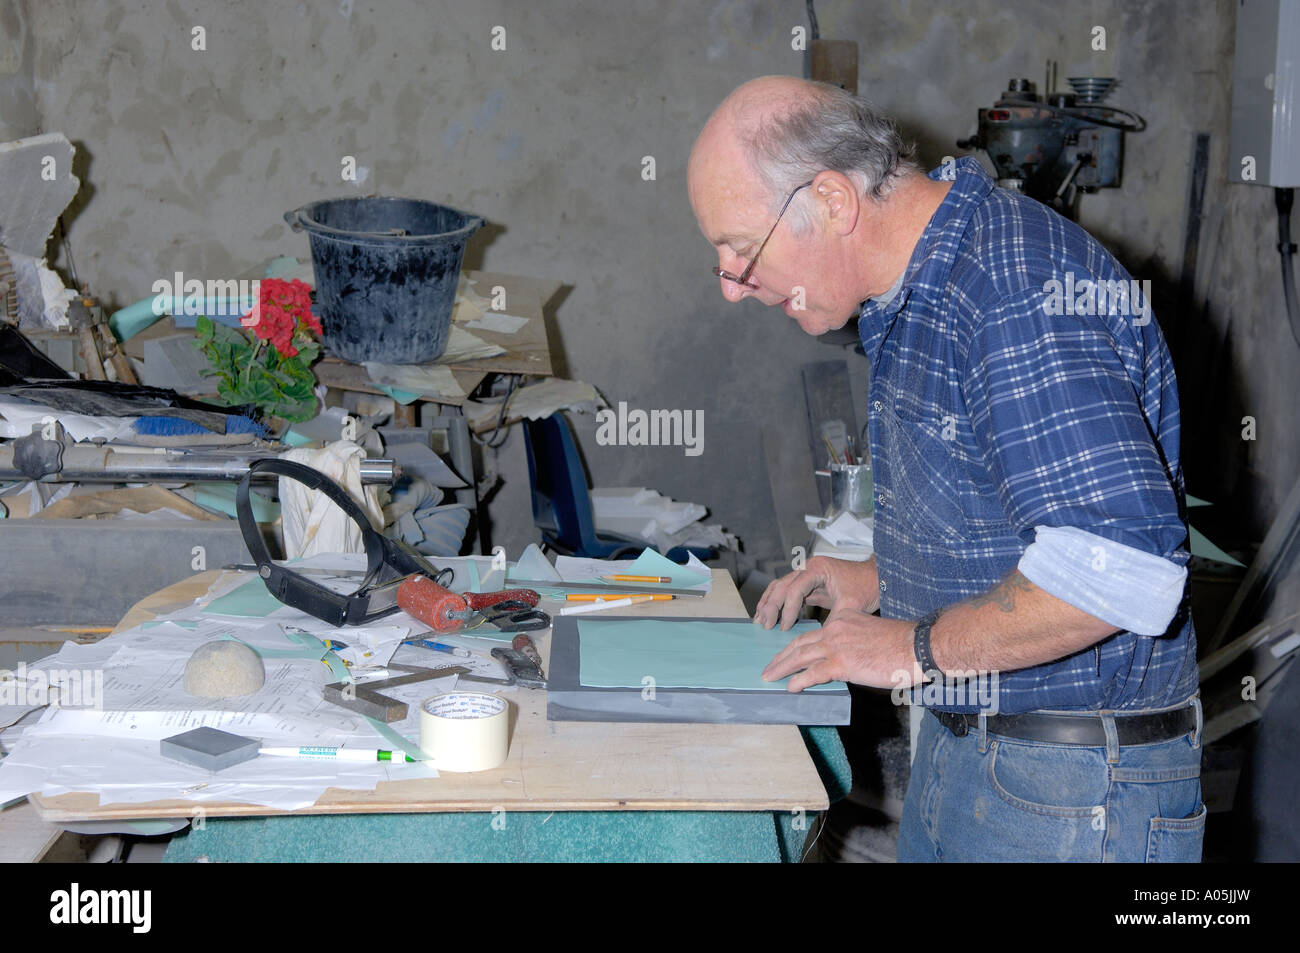 Craftsman Working on Piece of Slate on Lathe Inside Workshop Inigo Jones Slate Works Groeslon North West Wales Stock Photo